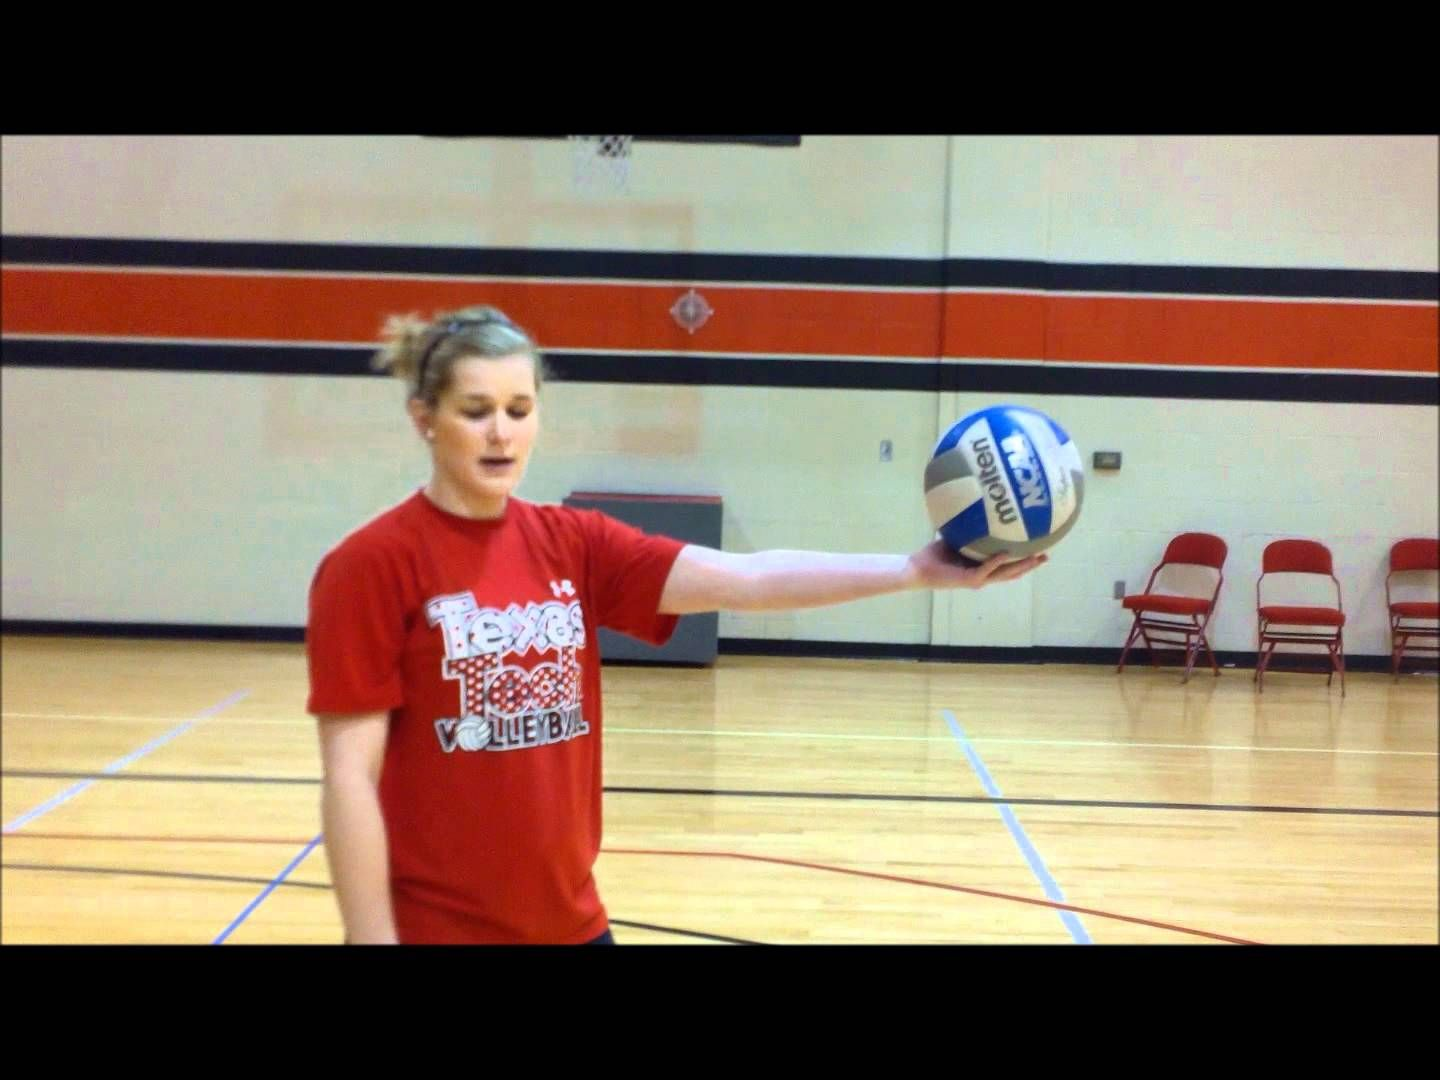 Sheridan Burgess Volleyball Serving Tutorial Volleyball Training Volleyball Practice Volleyball Workouts